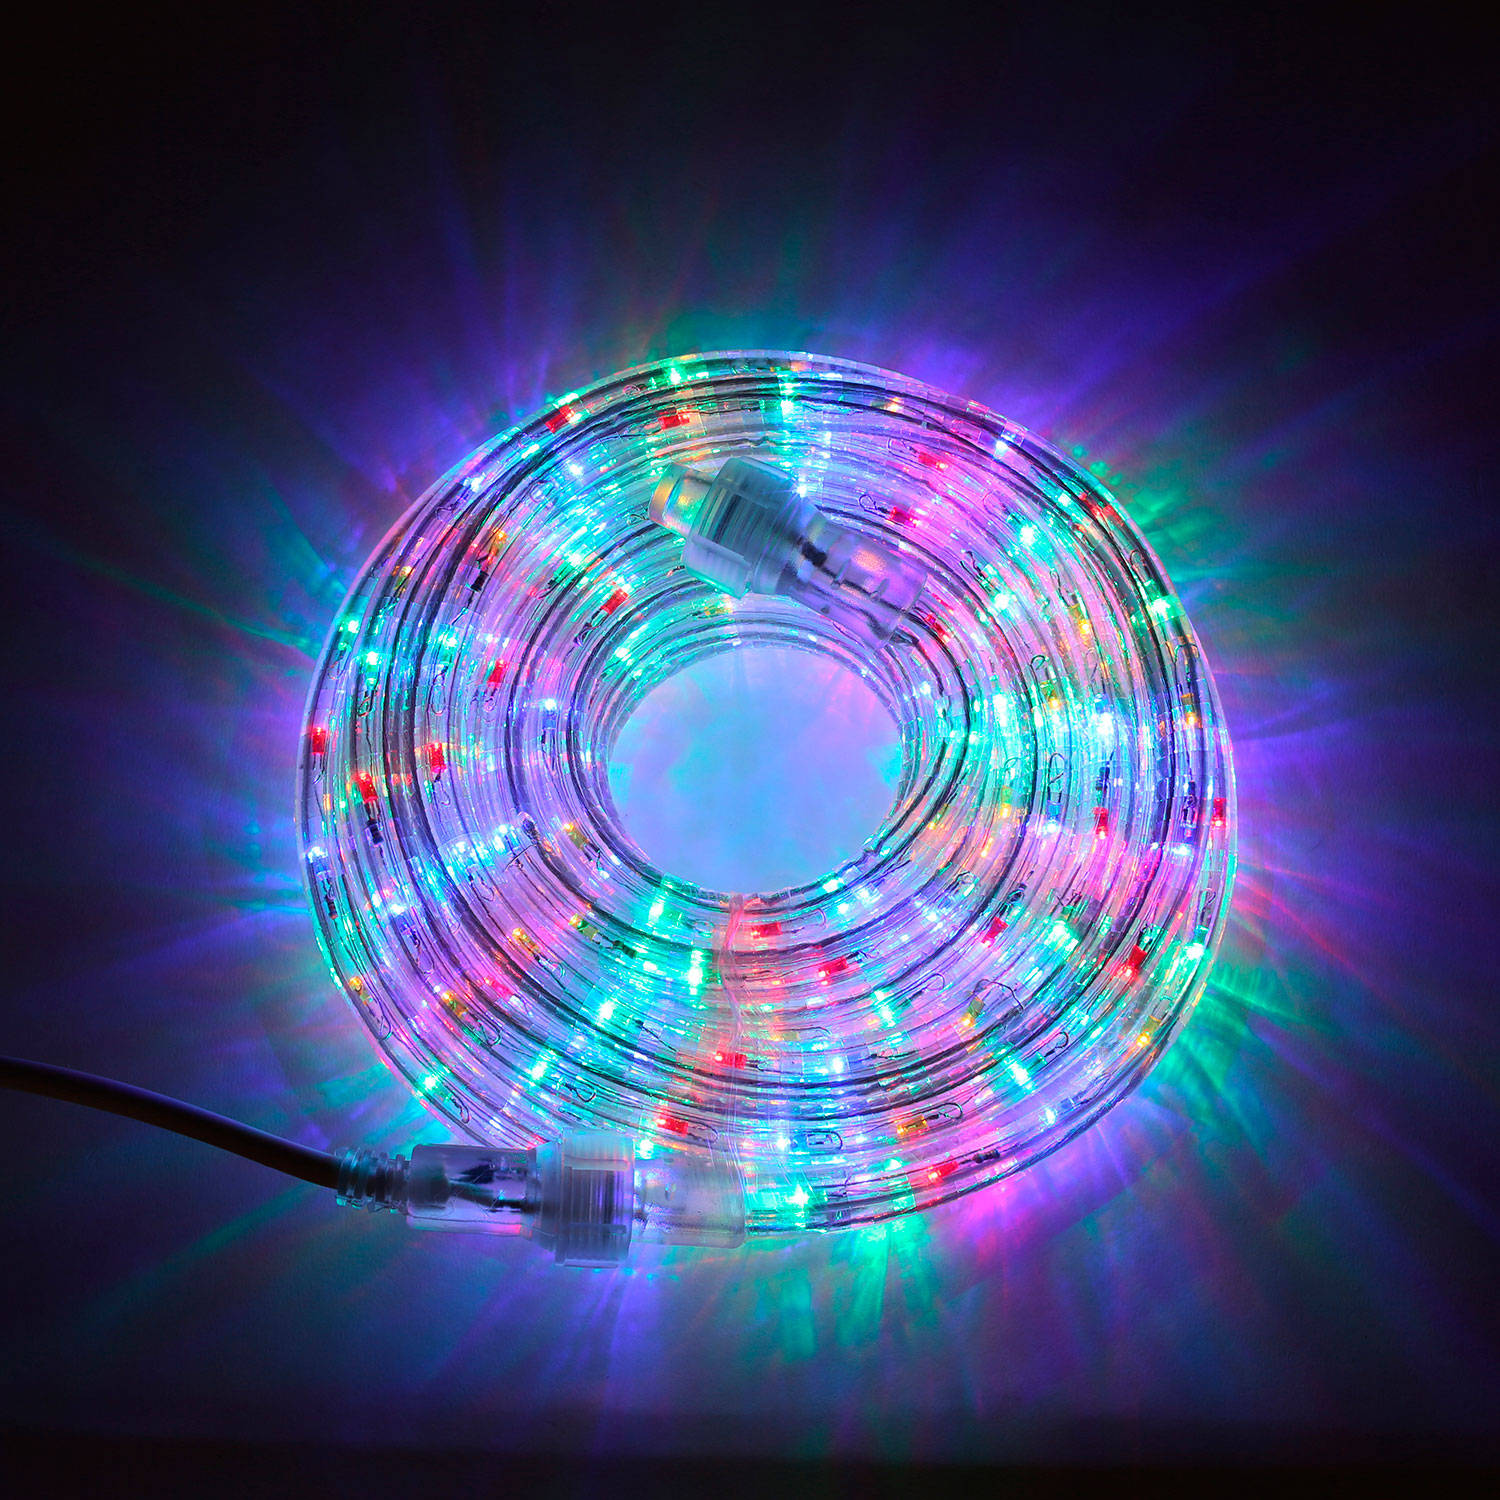 Starlight Led String Lights : Lights.com String Lights Rope Lights Plasma Multicolor Super Bright LED Rope Lights